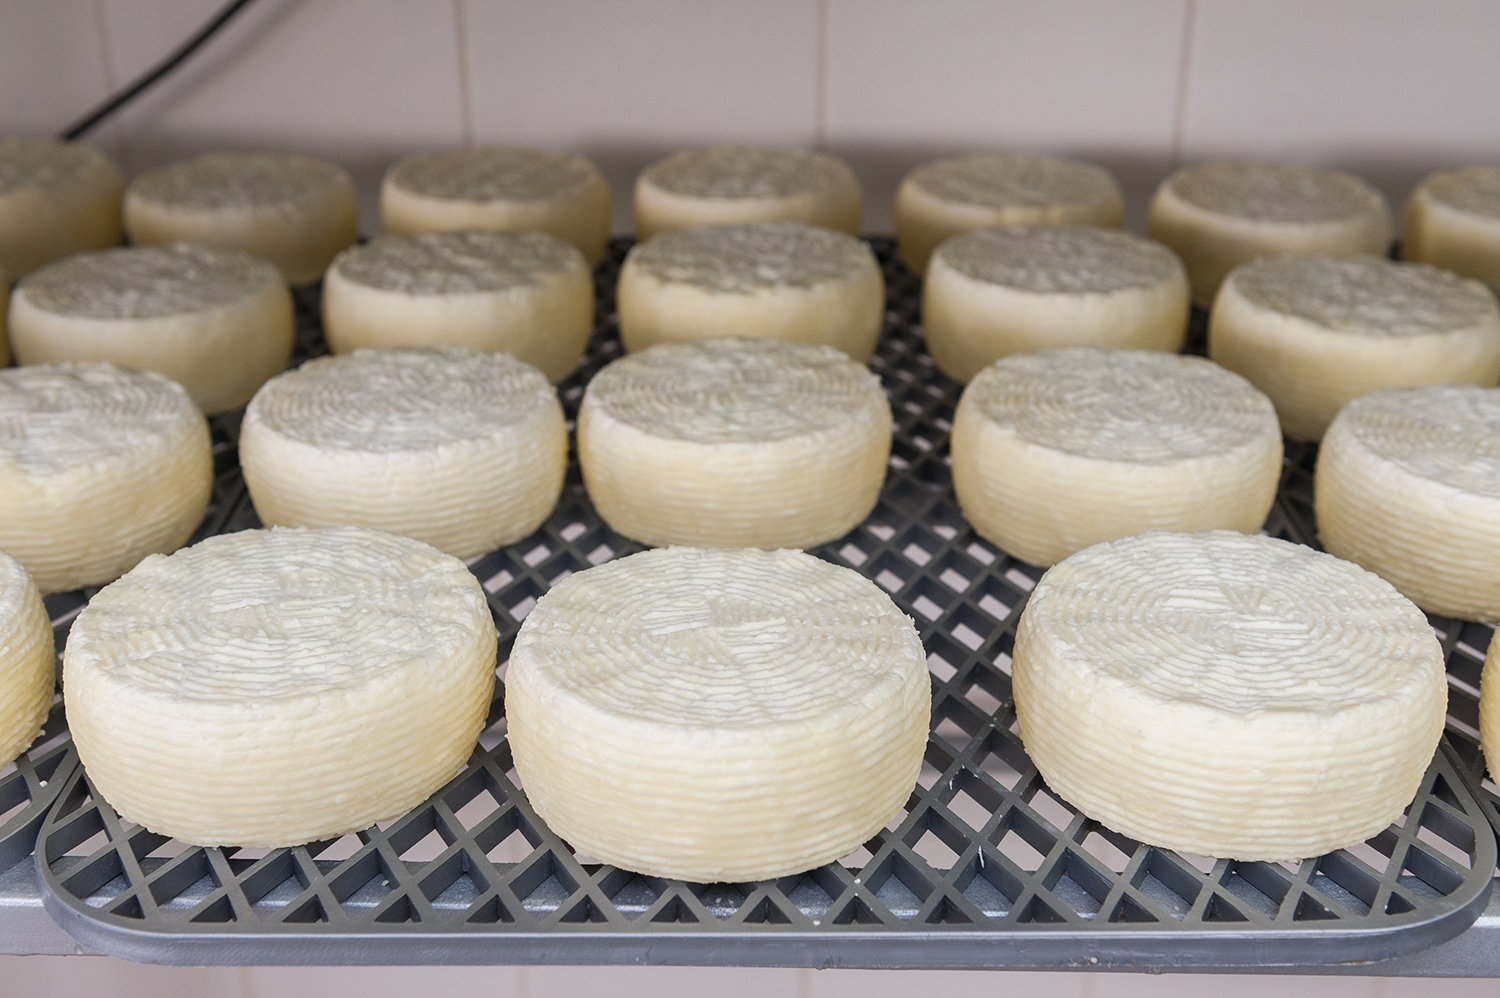 Melipasto/Melichloro cheese – a significant element of the intangible heritage of Lemnos